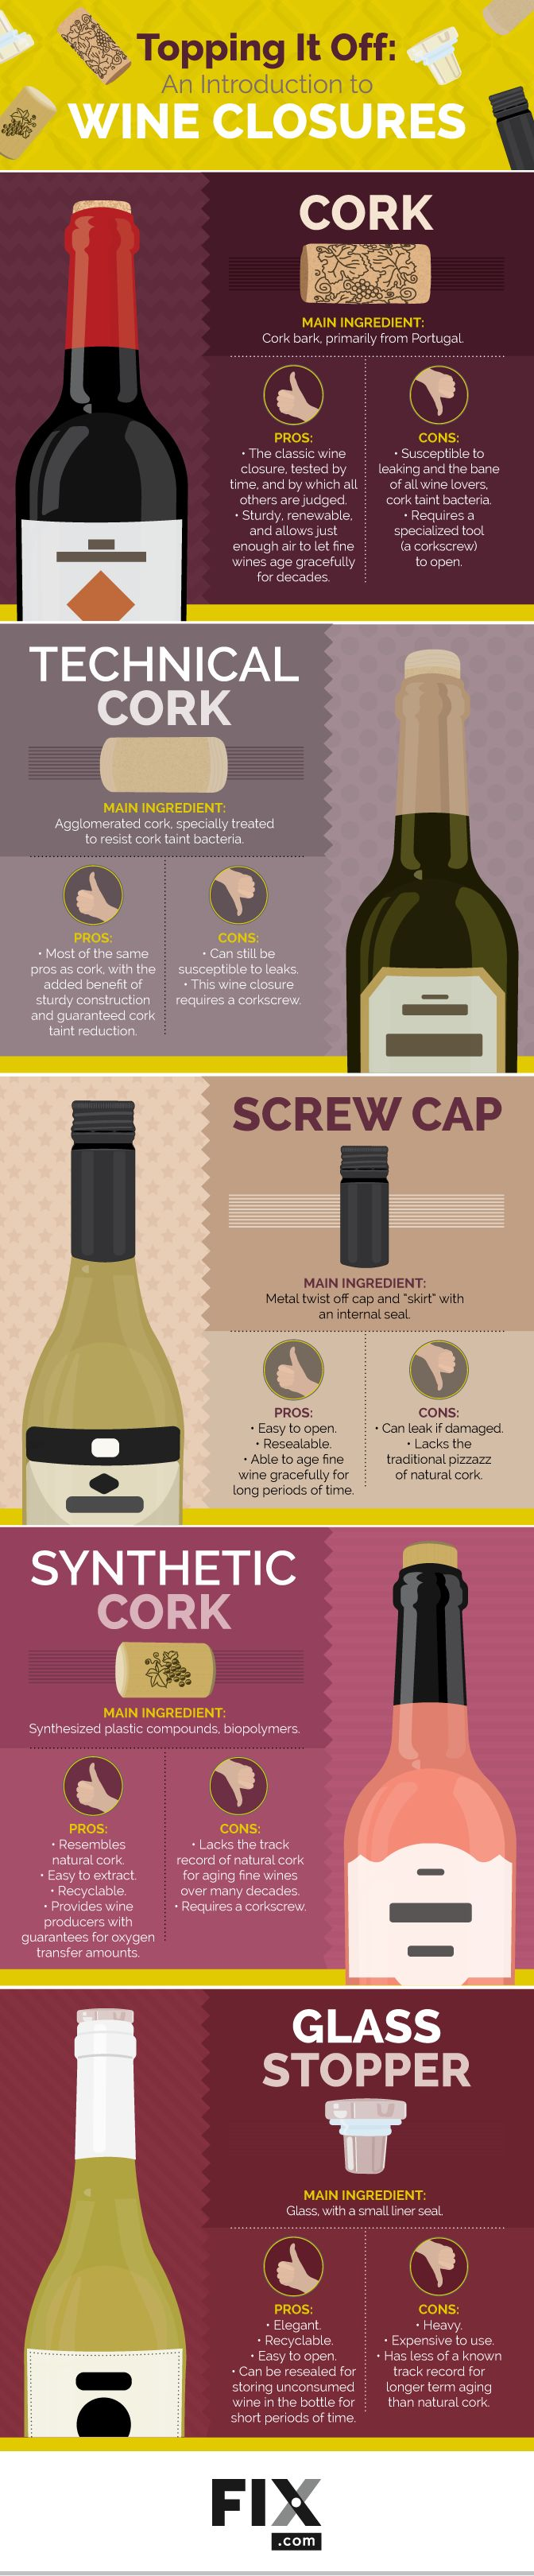 There is more than just one way to seal a bottle of wine! Next time you aren't able to finish that last glass of vino, take a look at how your bottle is topped. Cork is just one of the many wine closure options.